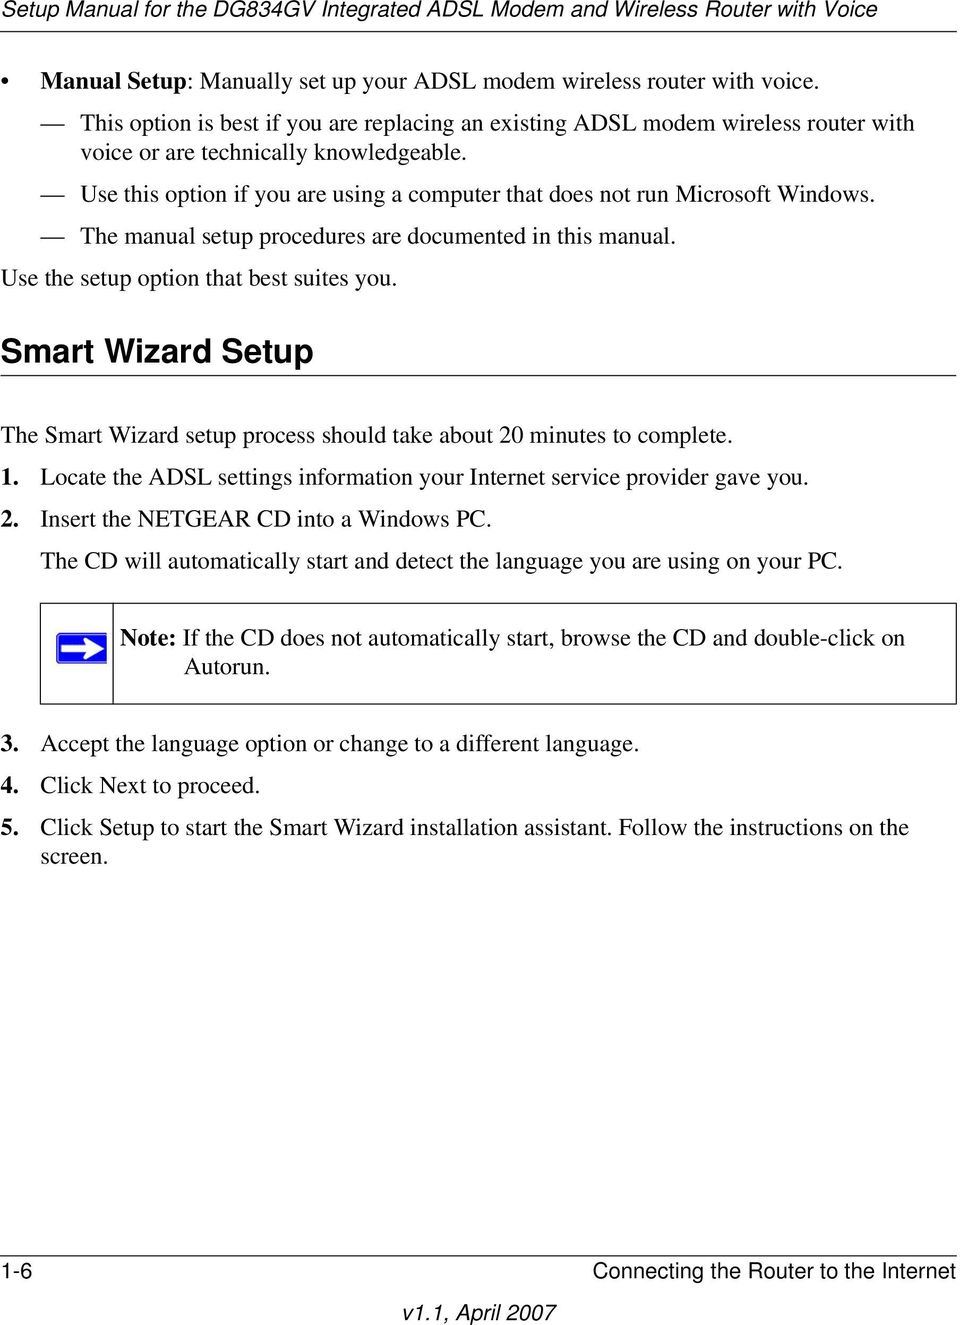 Smart Wizard Setup The Smart Wizard setup process should take about 20 minutes to complete. 1. Locate the ADSL settings information your Internet service provider gave you. 2. Insert the NETGEAR CD into a Windows PC.